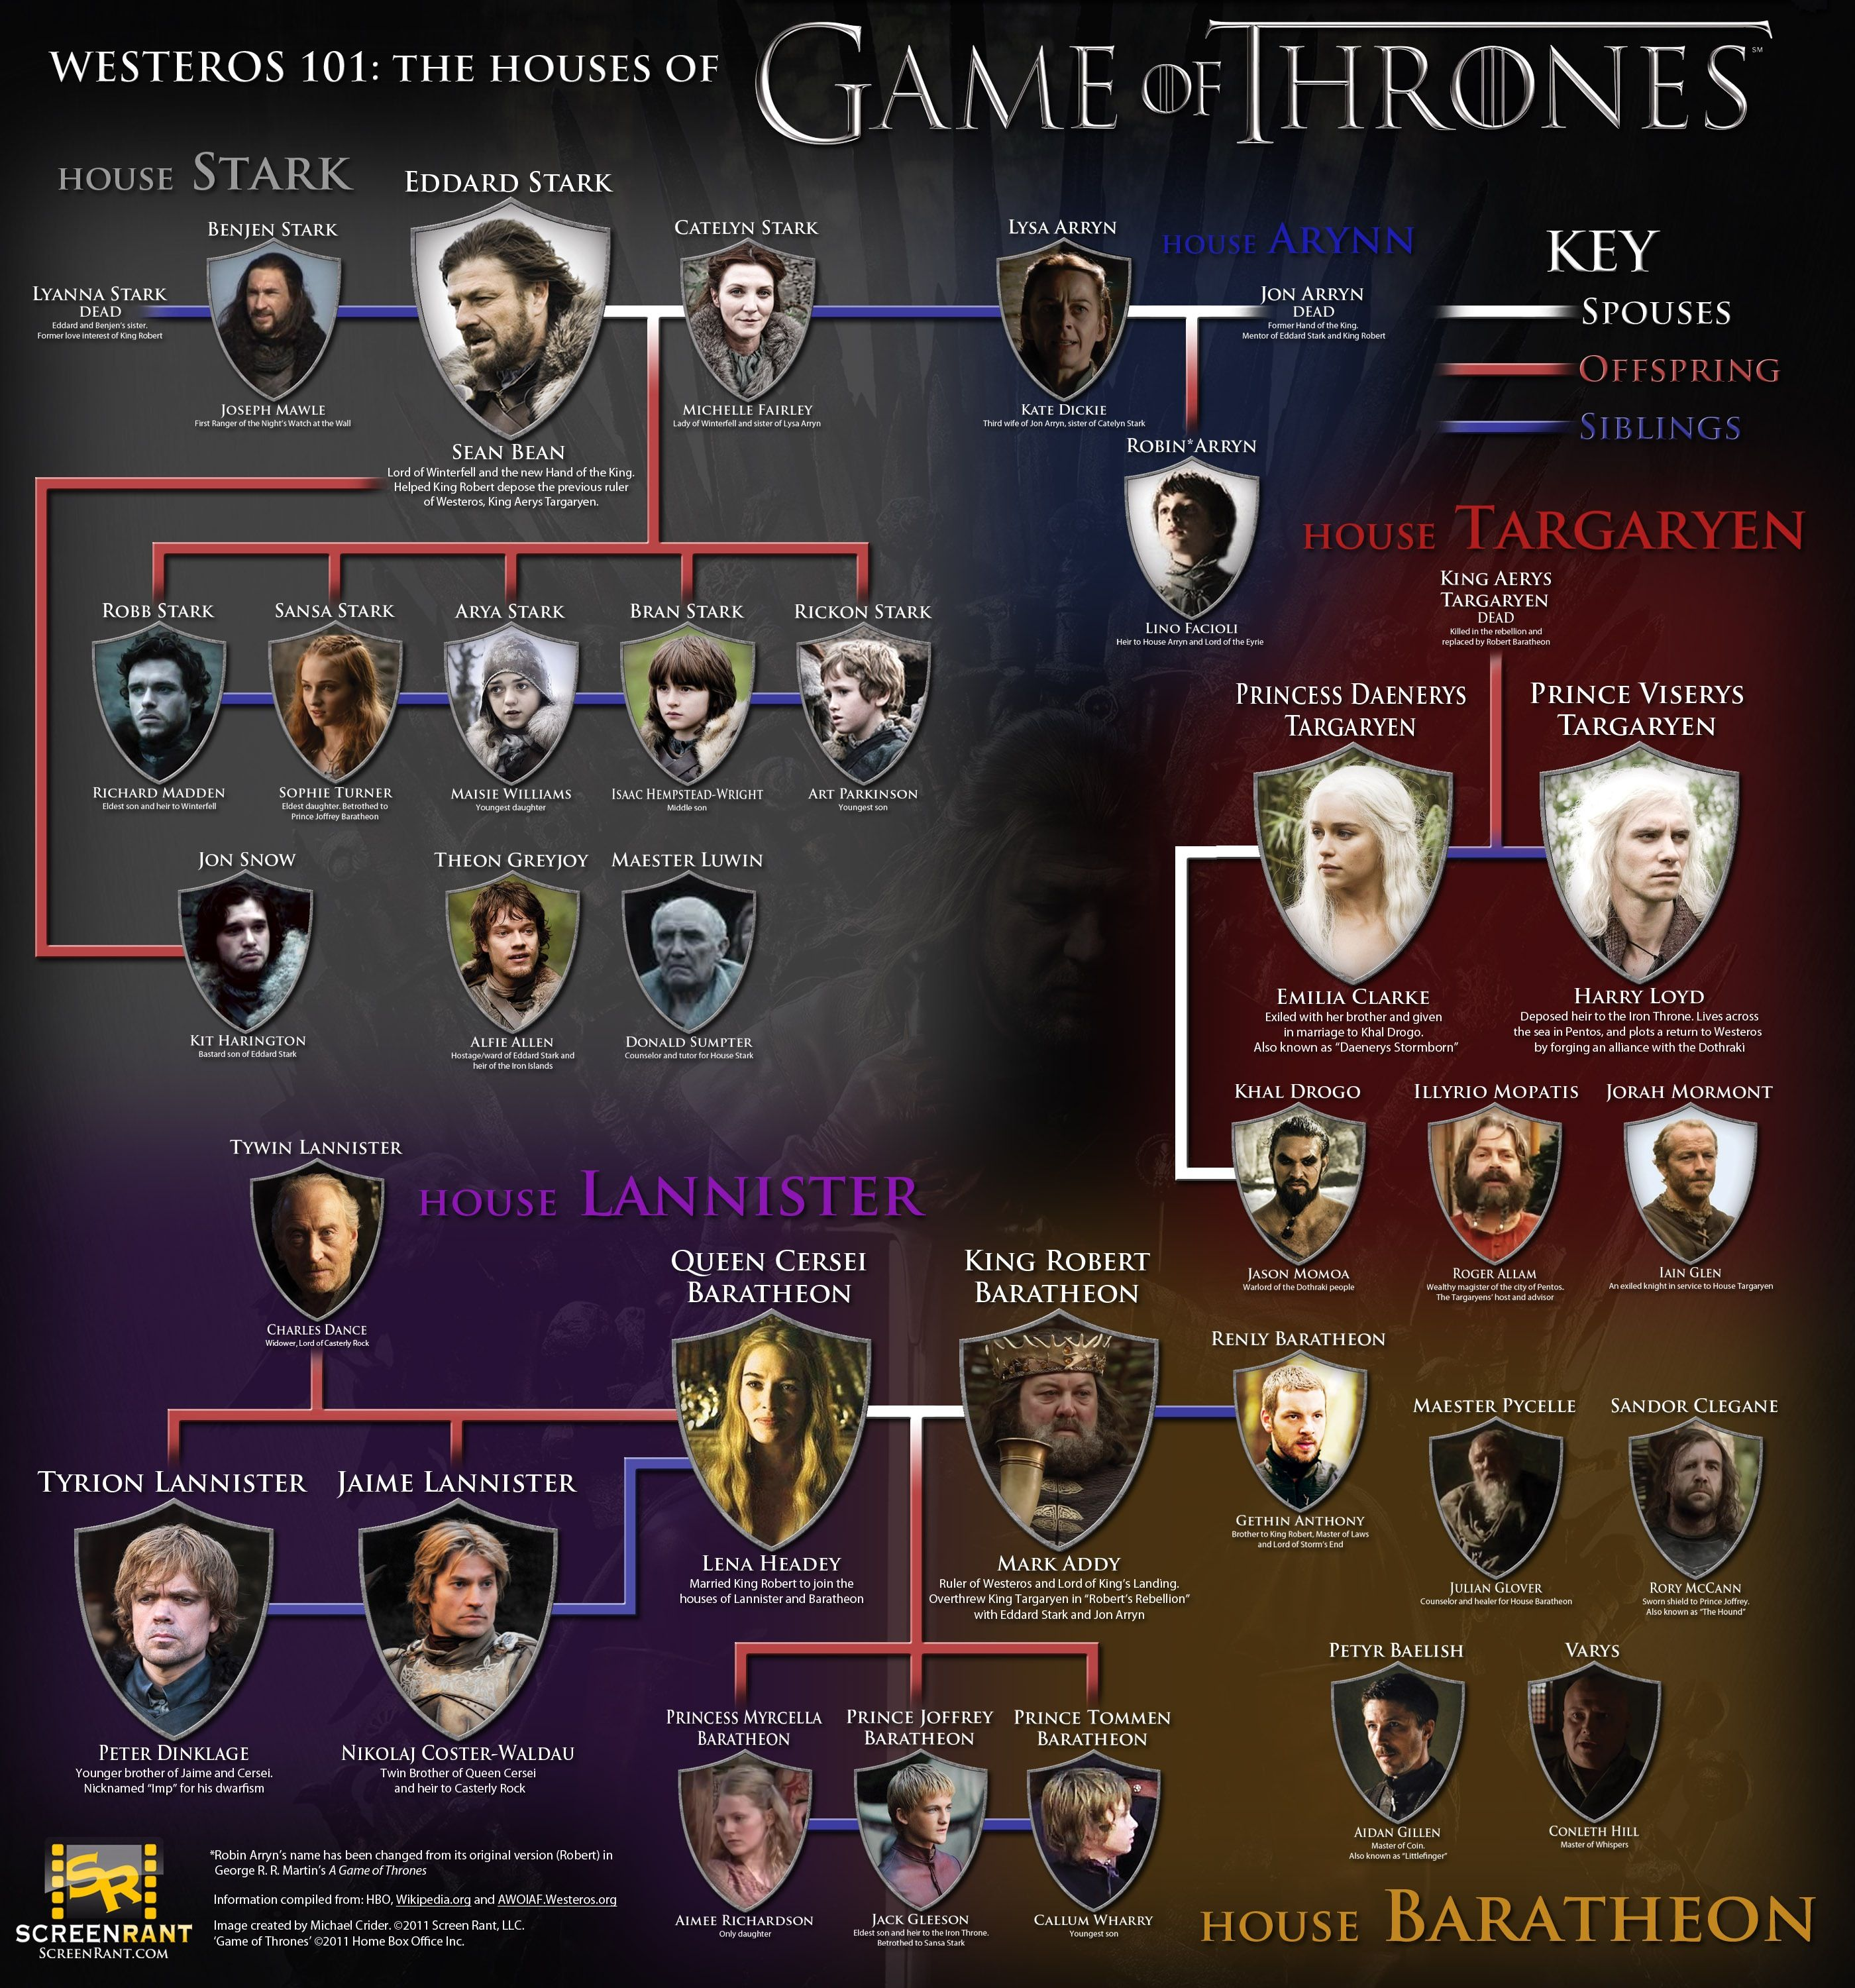 Family Lines Game of Thrones Westeros, Game of thrones